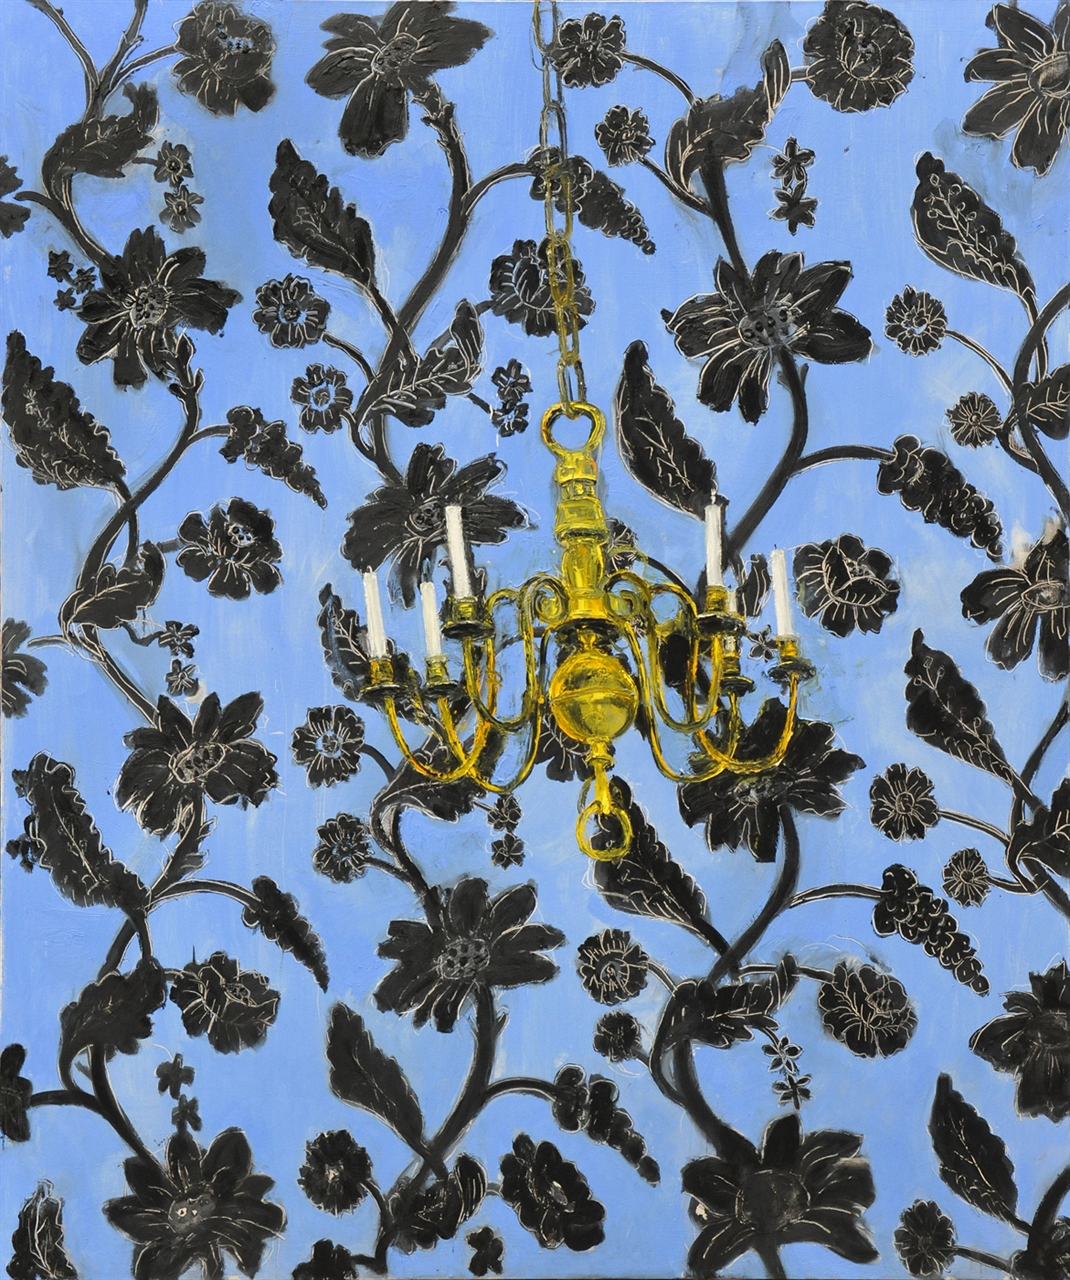 Candelabra on Blue Wallpaper, 2012